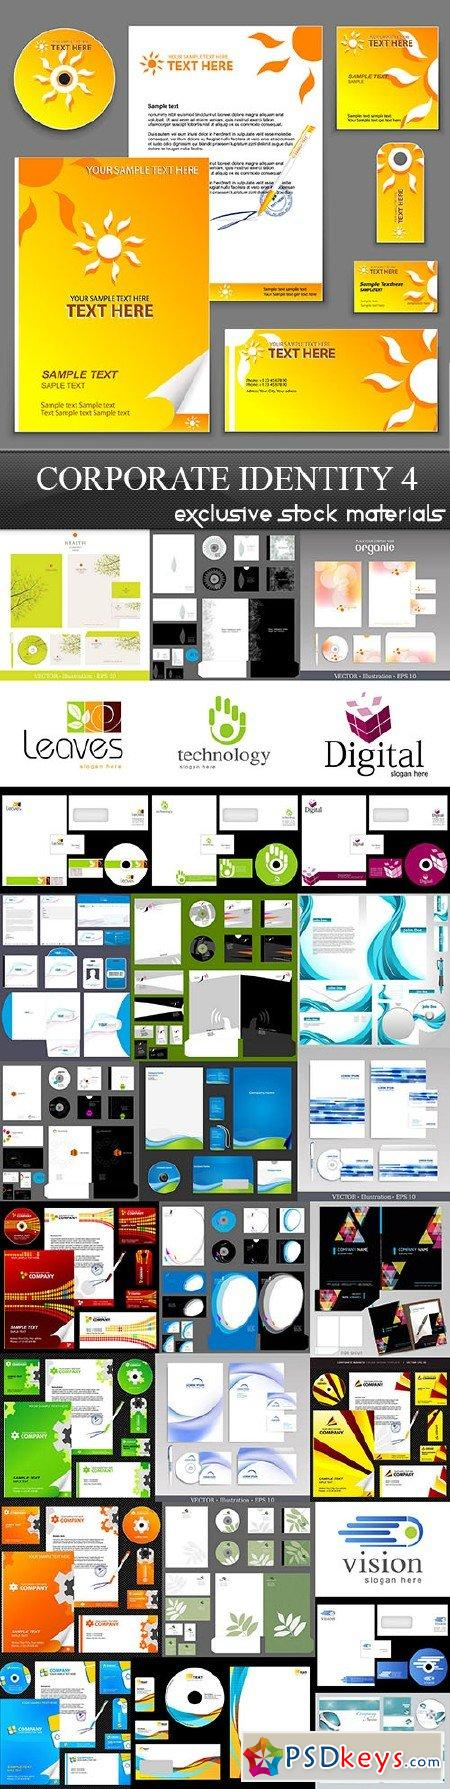 Corporate Identity Collection 3 25xEPS, AI